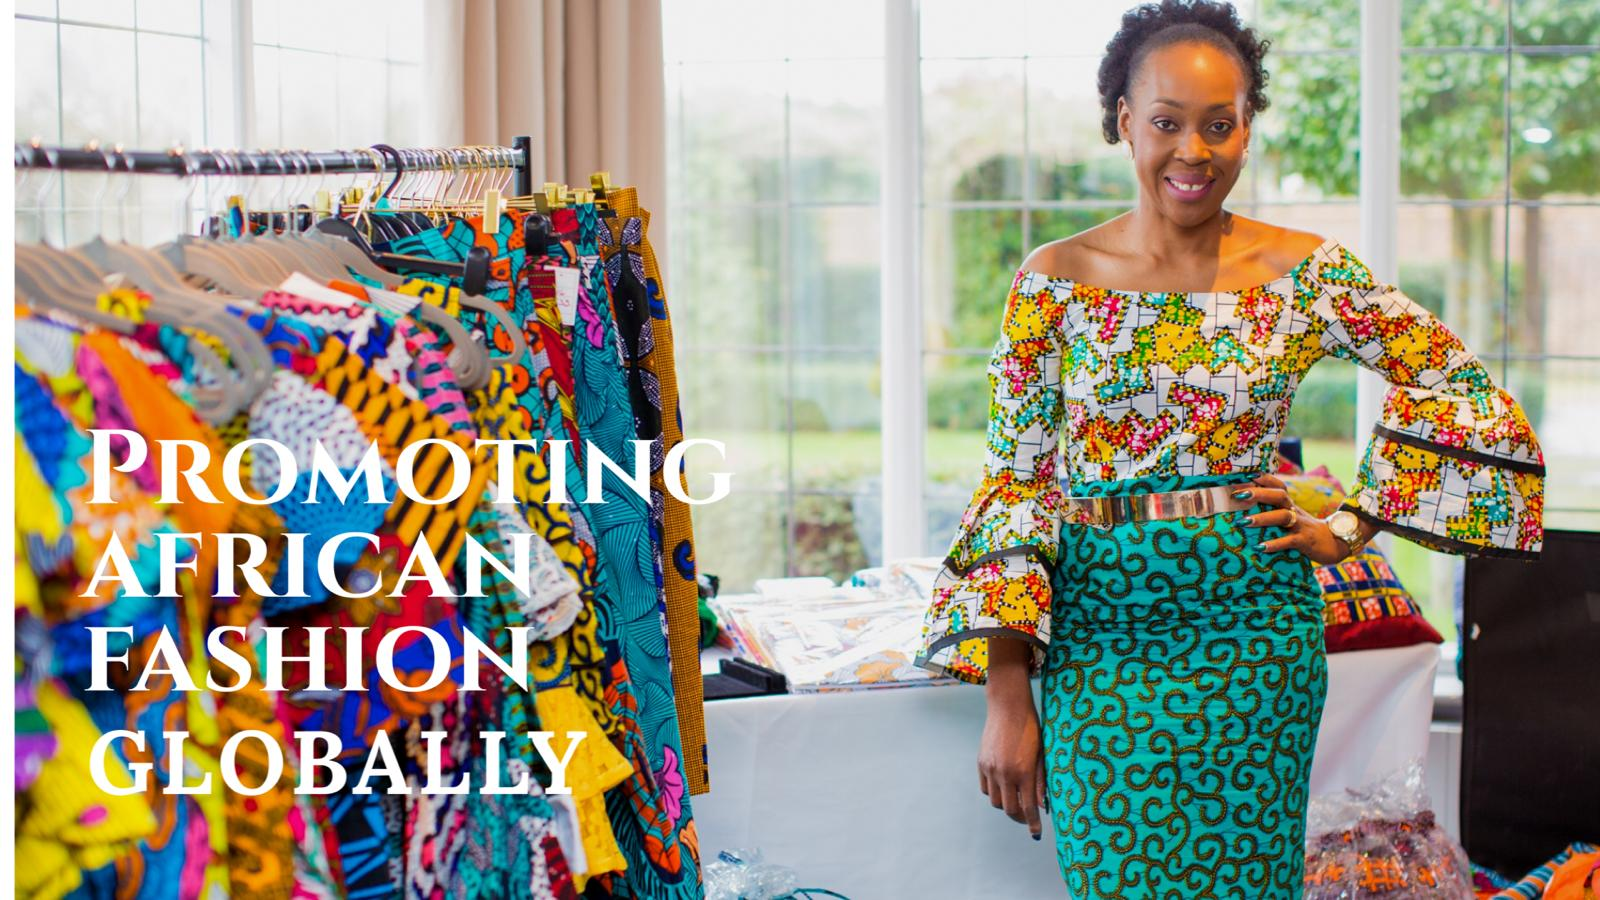 Promoting African Fashion Globally